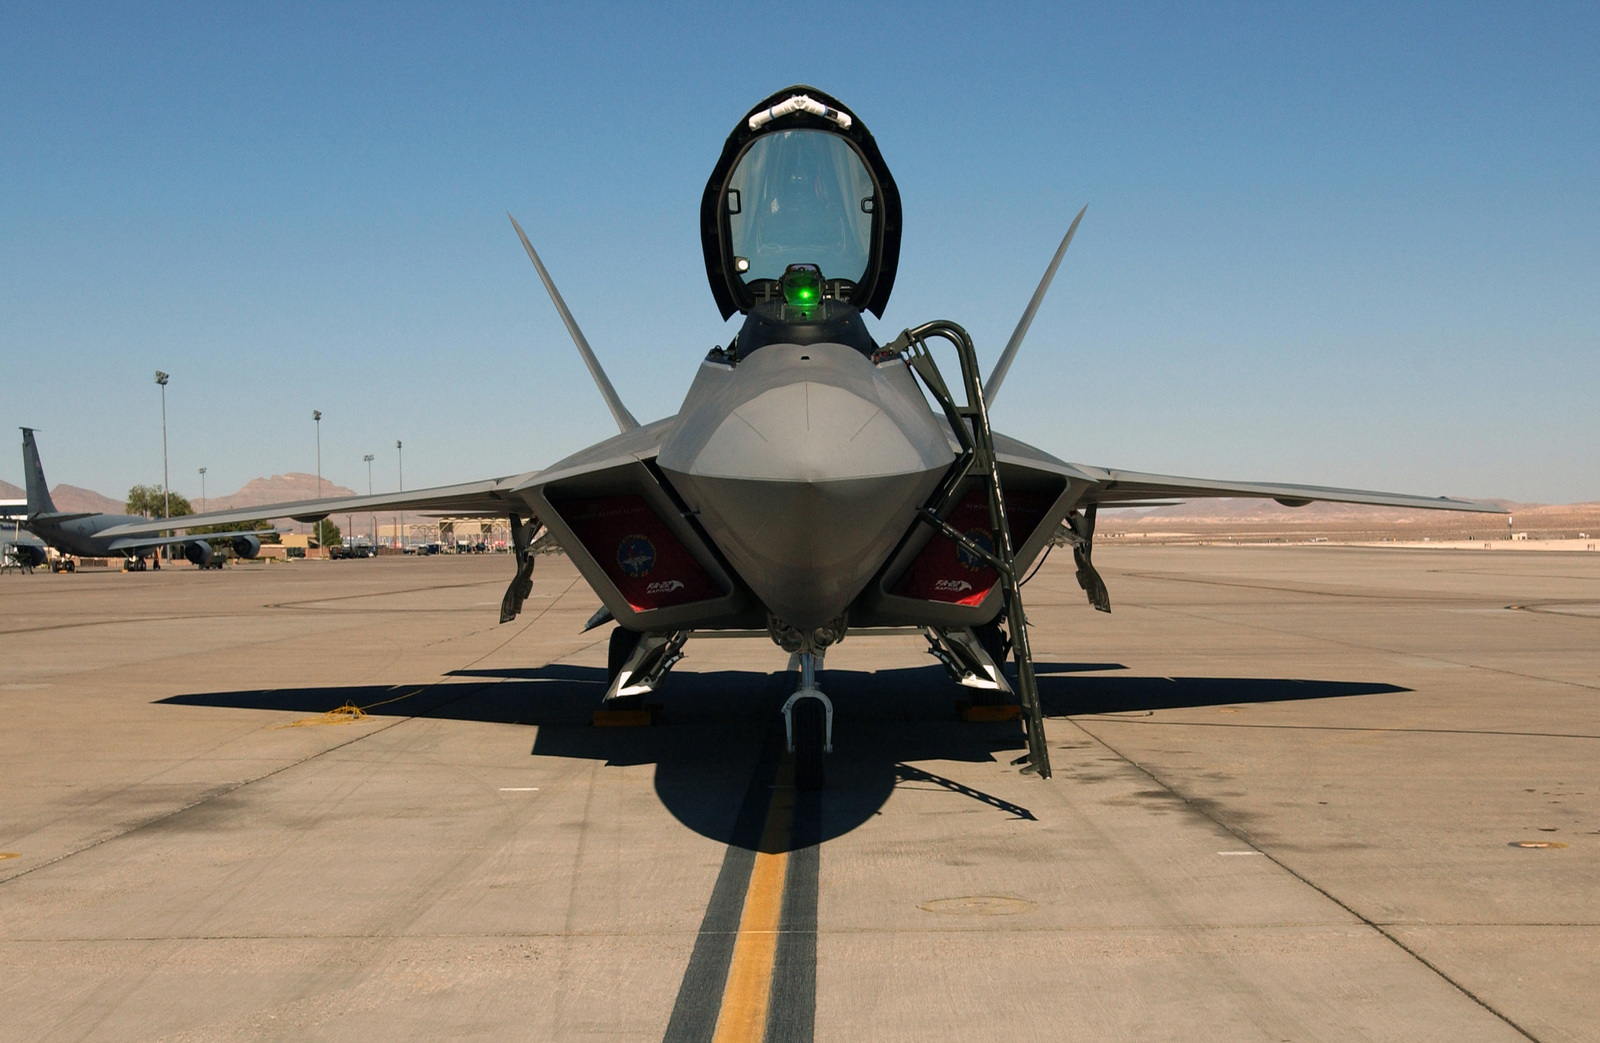 A US Air Force (USAF) Lockheed Martin built F/A-22 Raptor fighter sits on the parking ramp at Nellis Air Force Base (AFB), Nevada (NV)